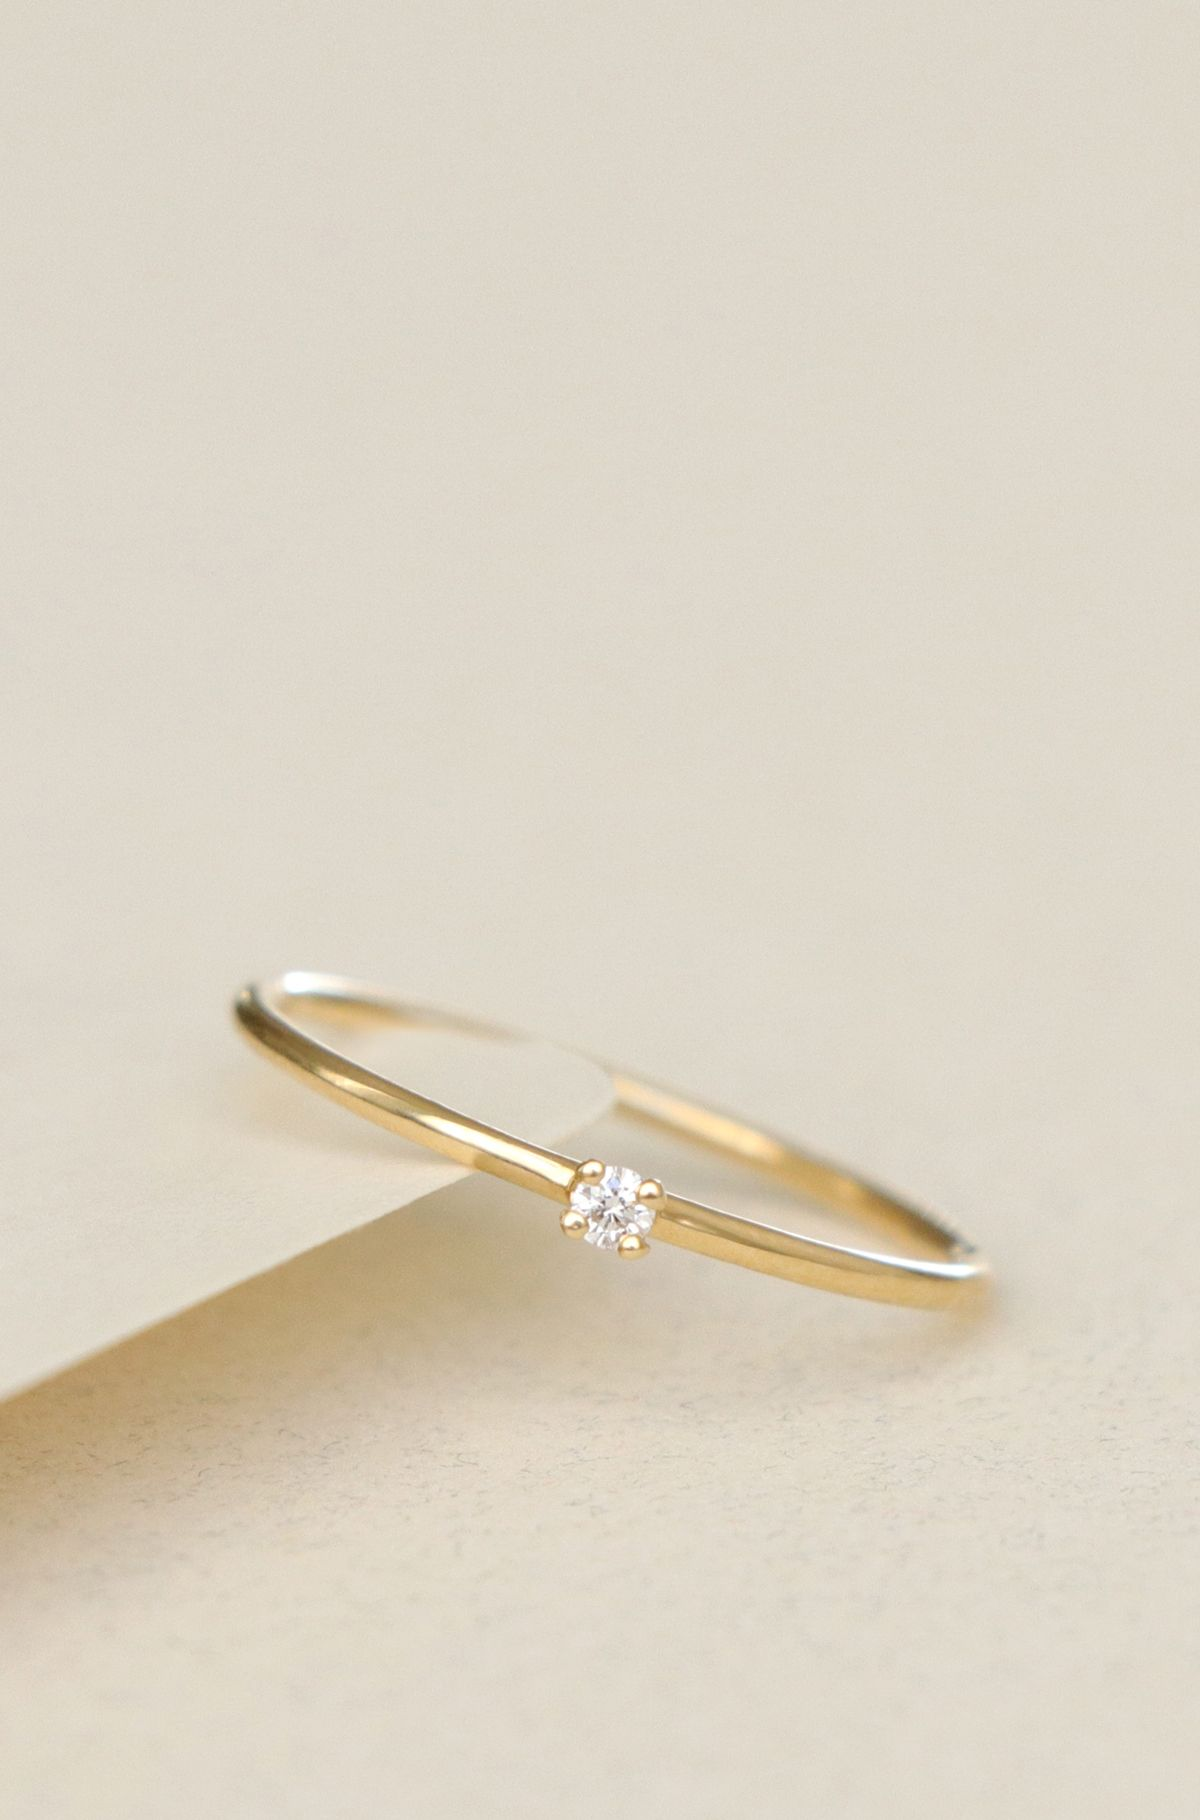 Vow Vrai Oro Wedding Promise Ring Simple Tiny Diamond Engagement Ring Available In 18k Ye Promise Rings Simple Diamond Engagement Rings Fine Jewelry Ring